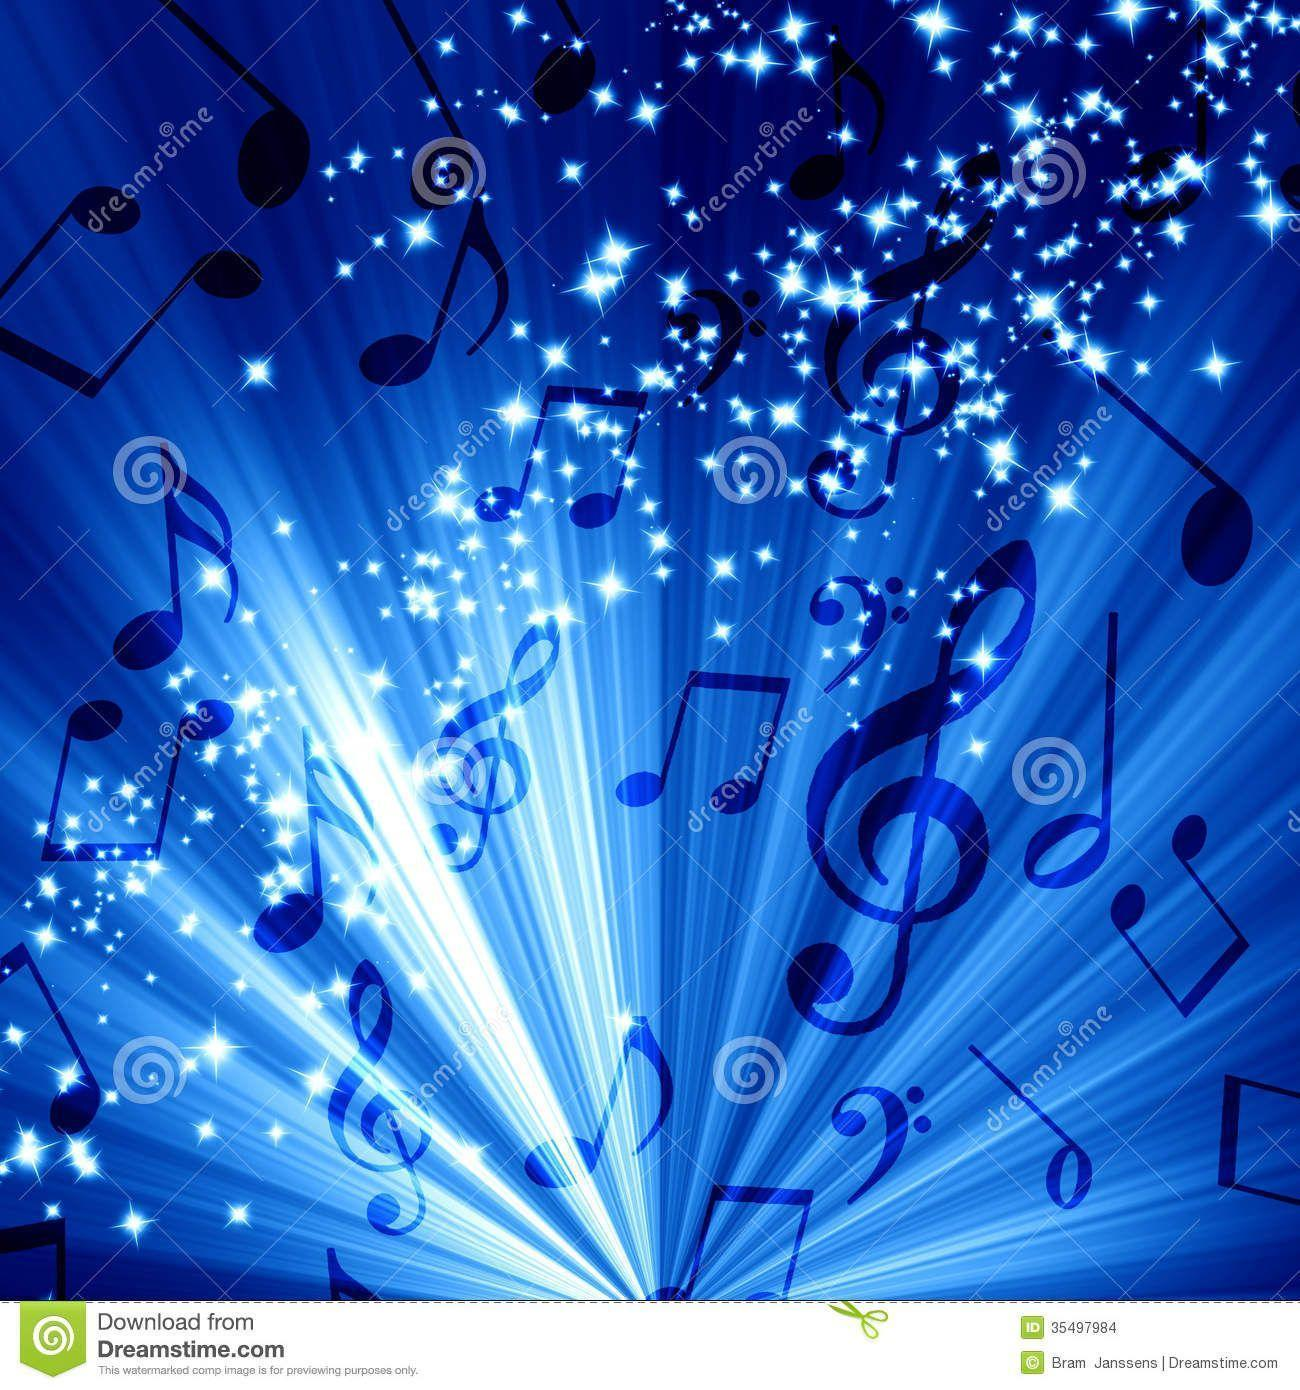 how to include music in powerpoint